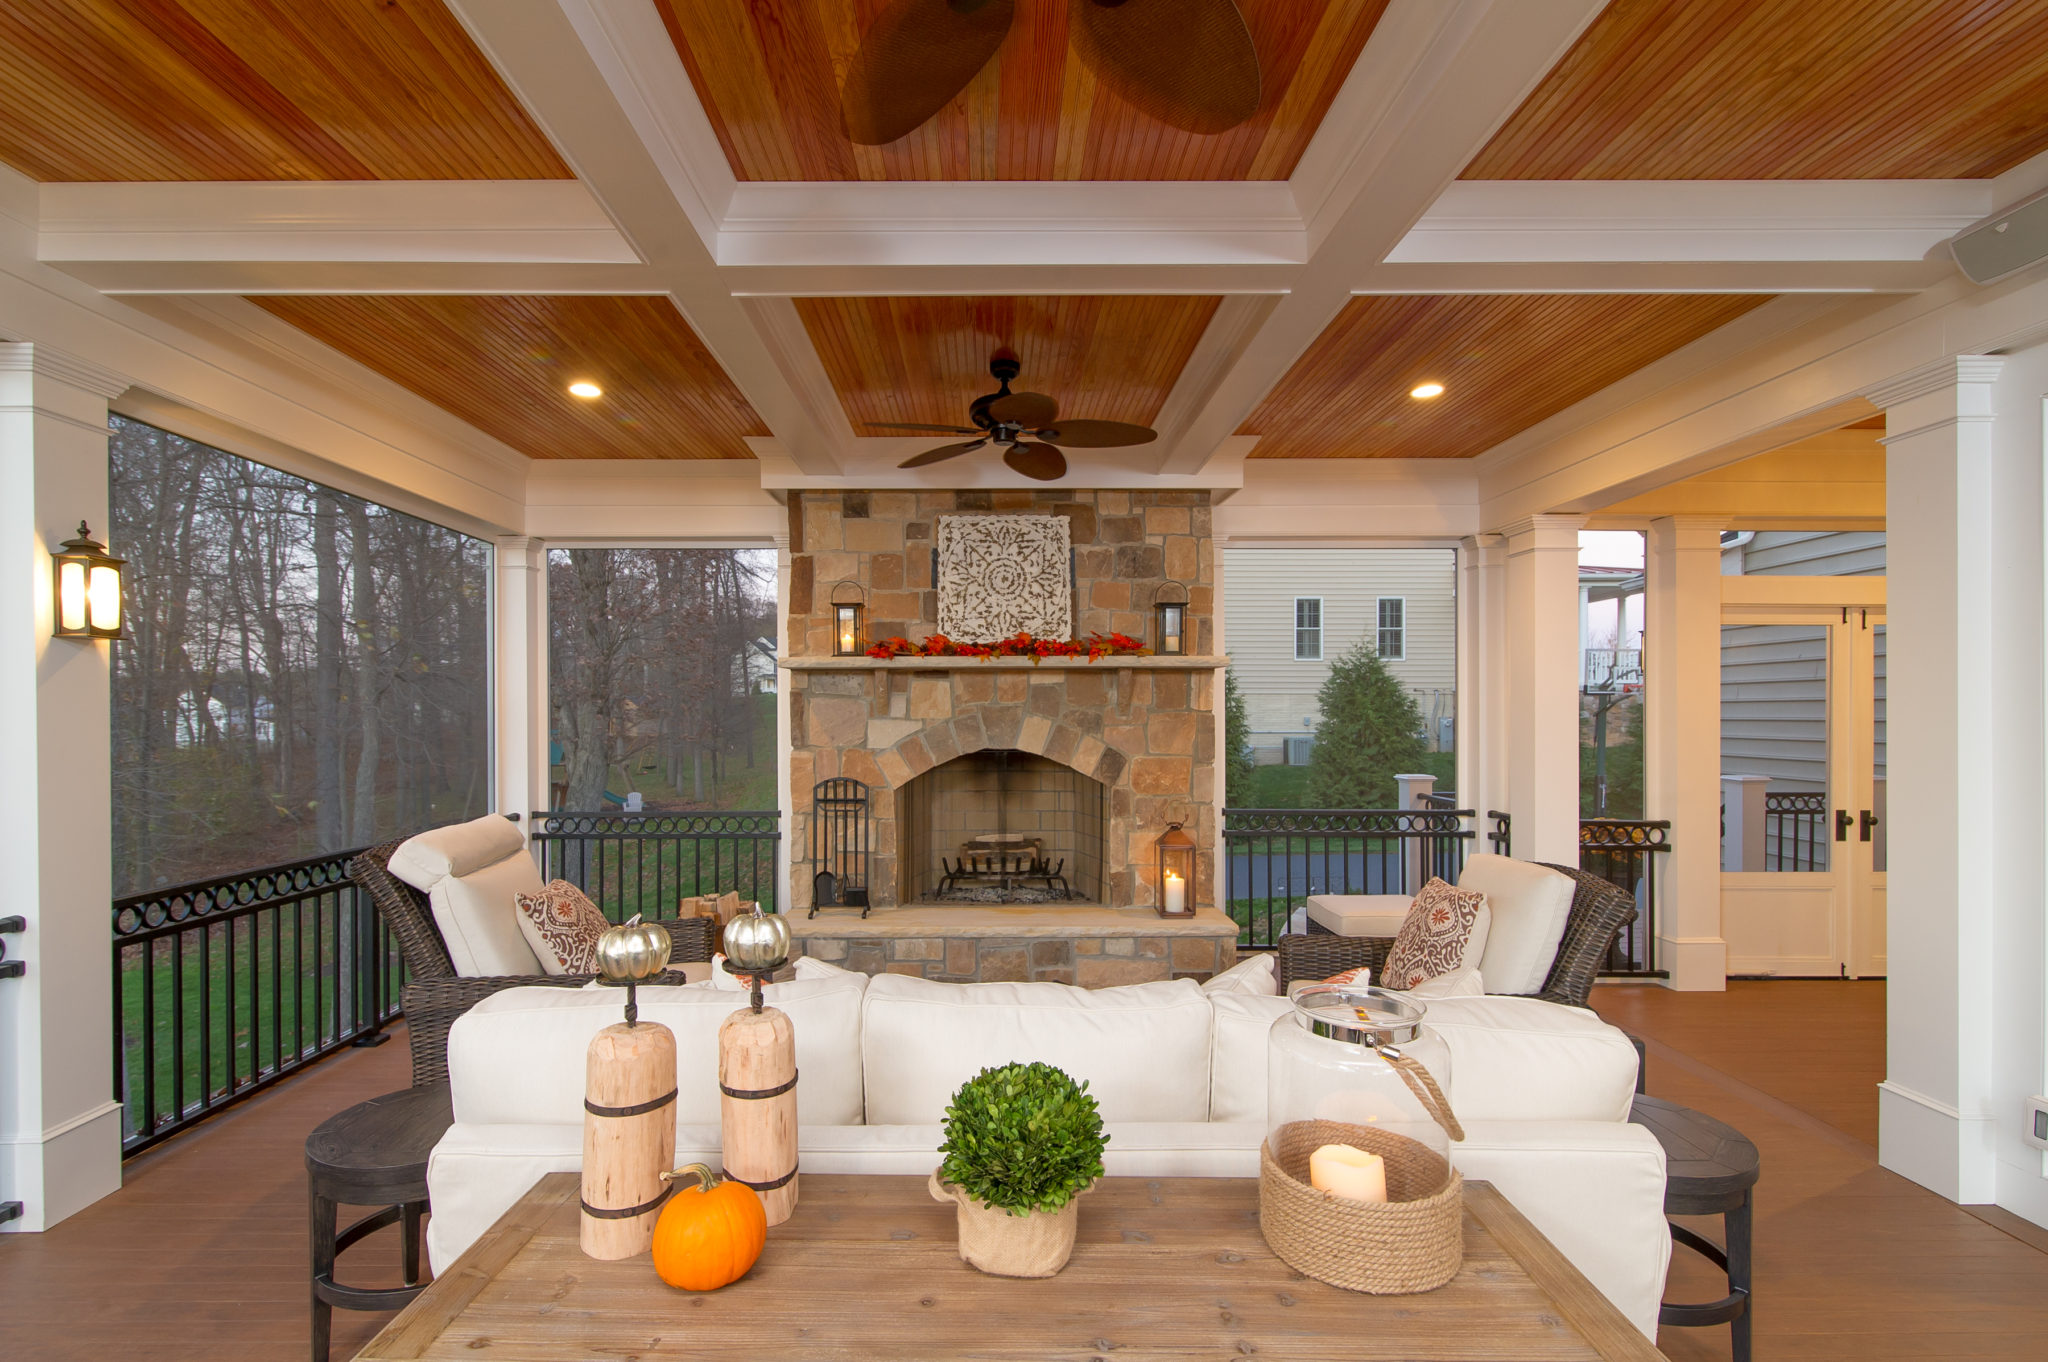 Building materials supply and installation myrtle beach for Screened in porch fireplace ideas